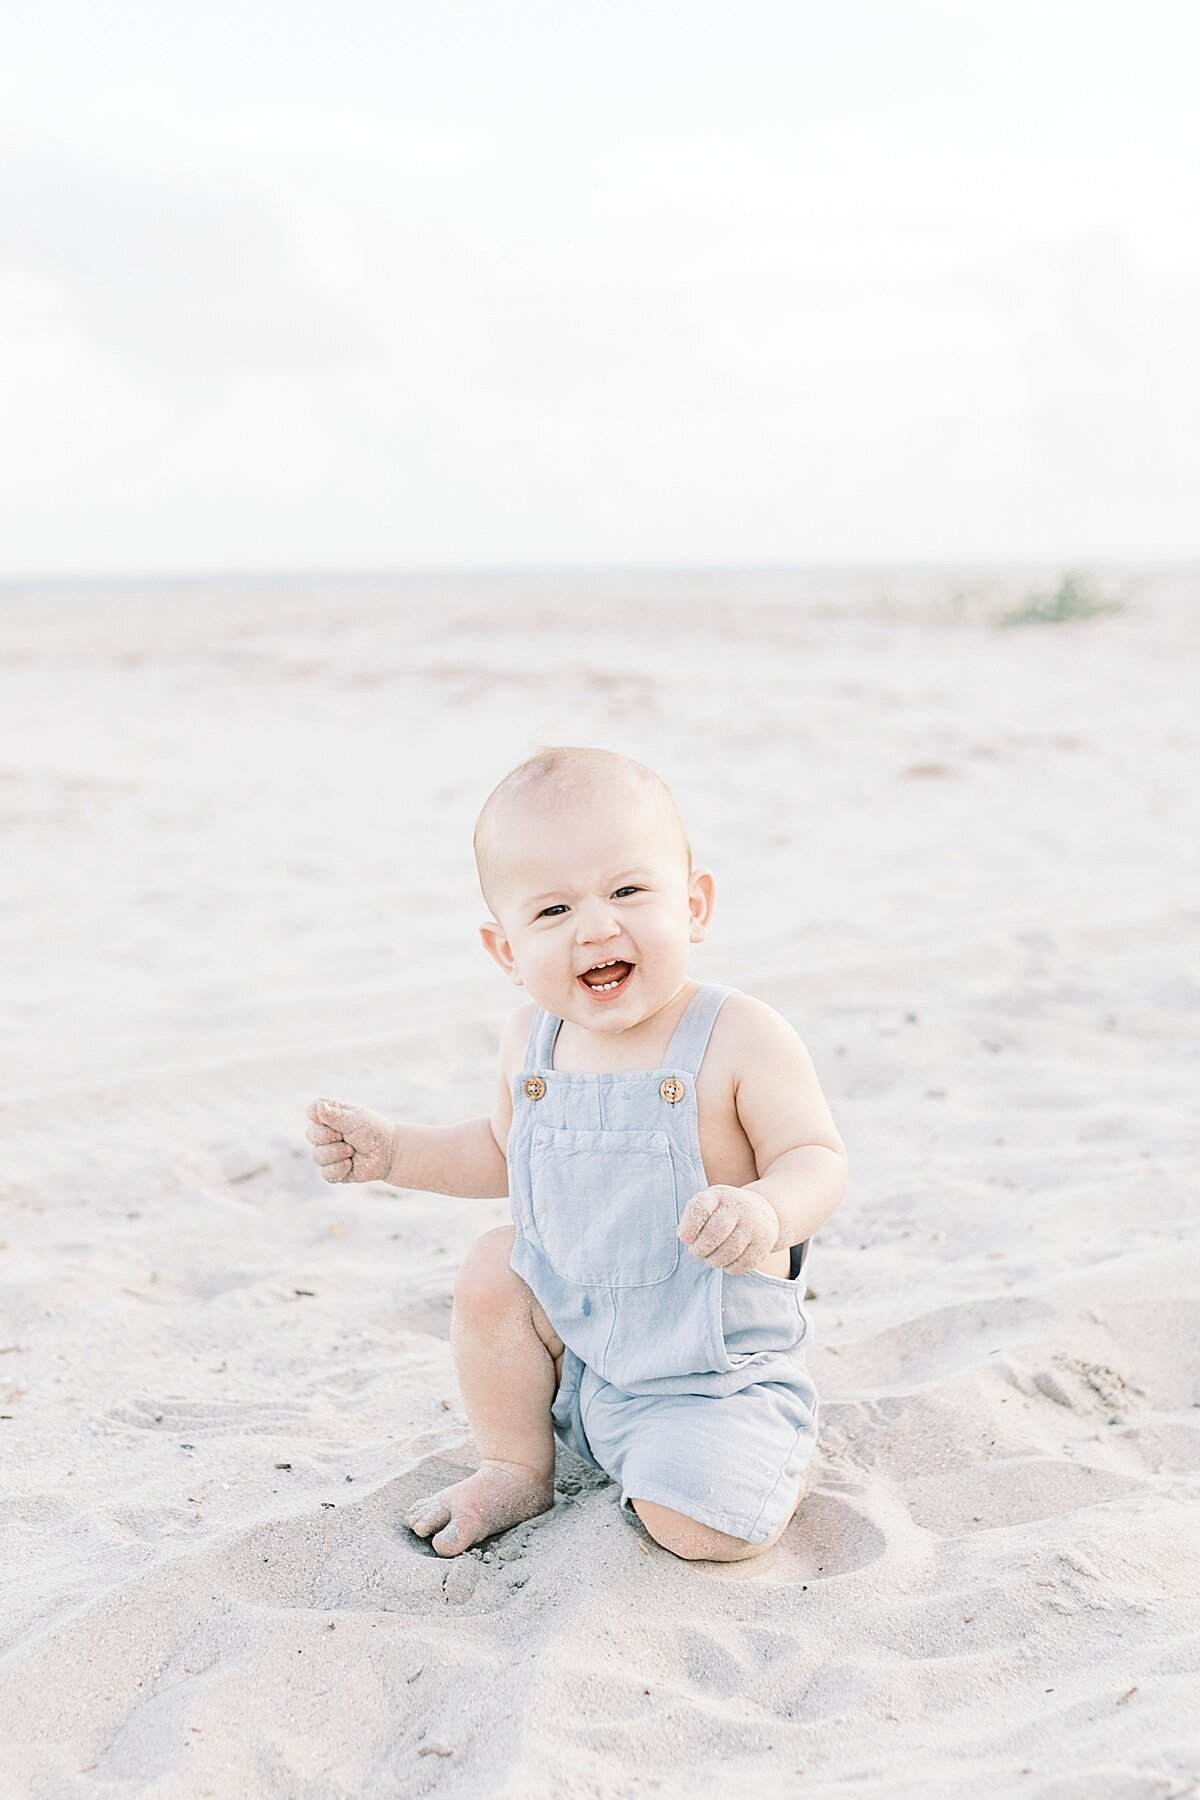 First-birthday-photoshoot-Isle-of-Palms-caitlyn-motycka-photography_0011